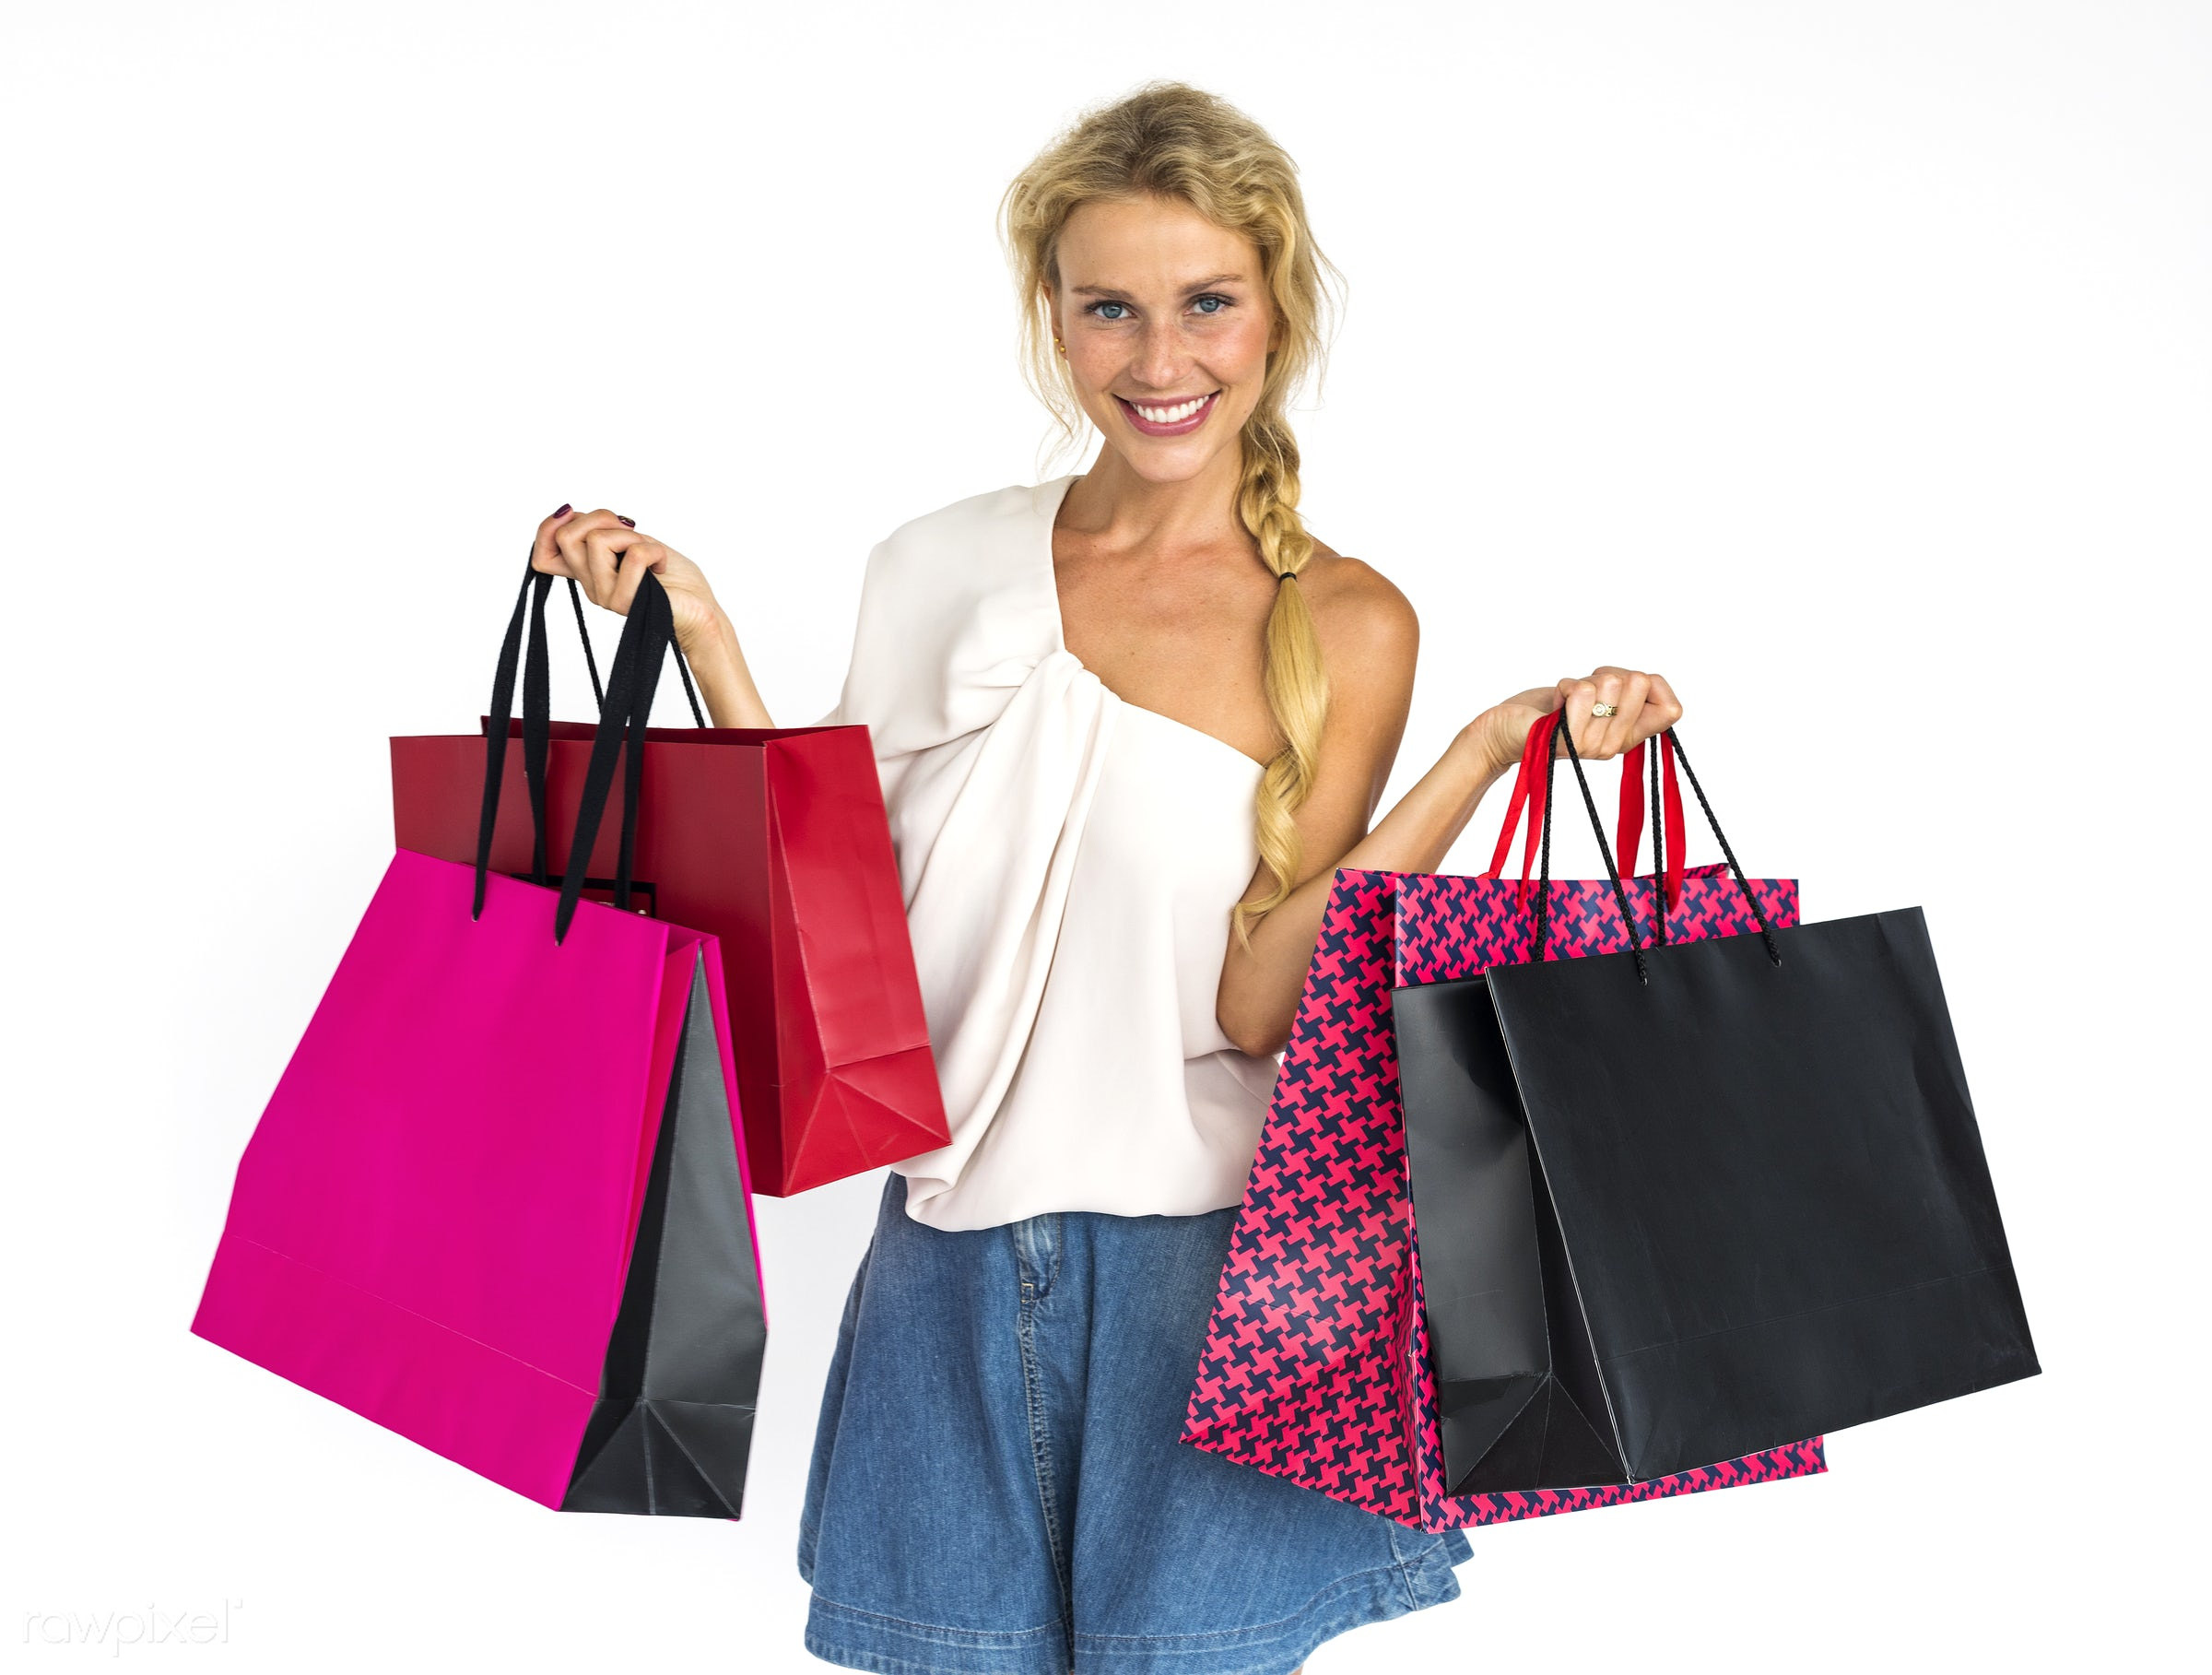 expression, studio, shop, person, store, holding, customer, consumer, caucasian, woman, spending, purchases, isolated,...